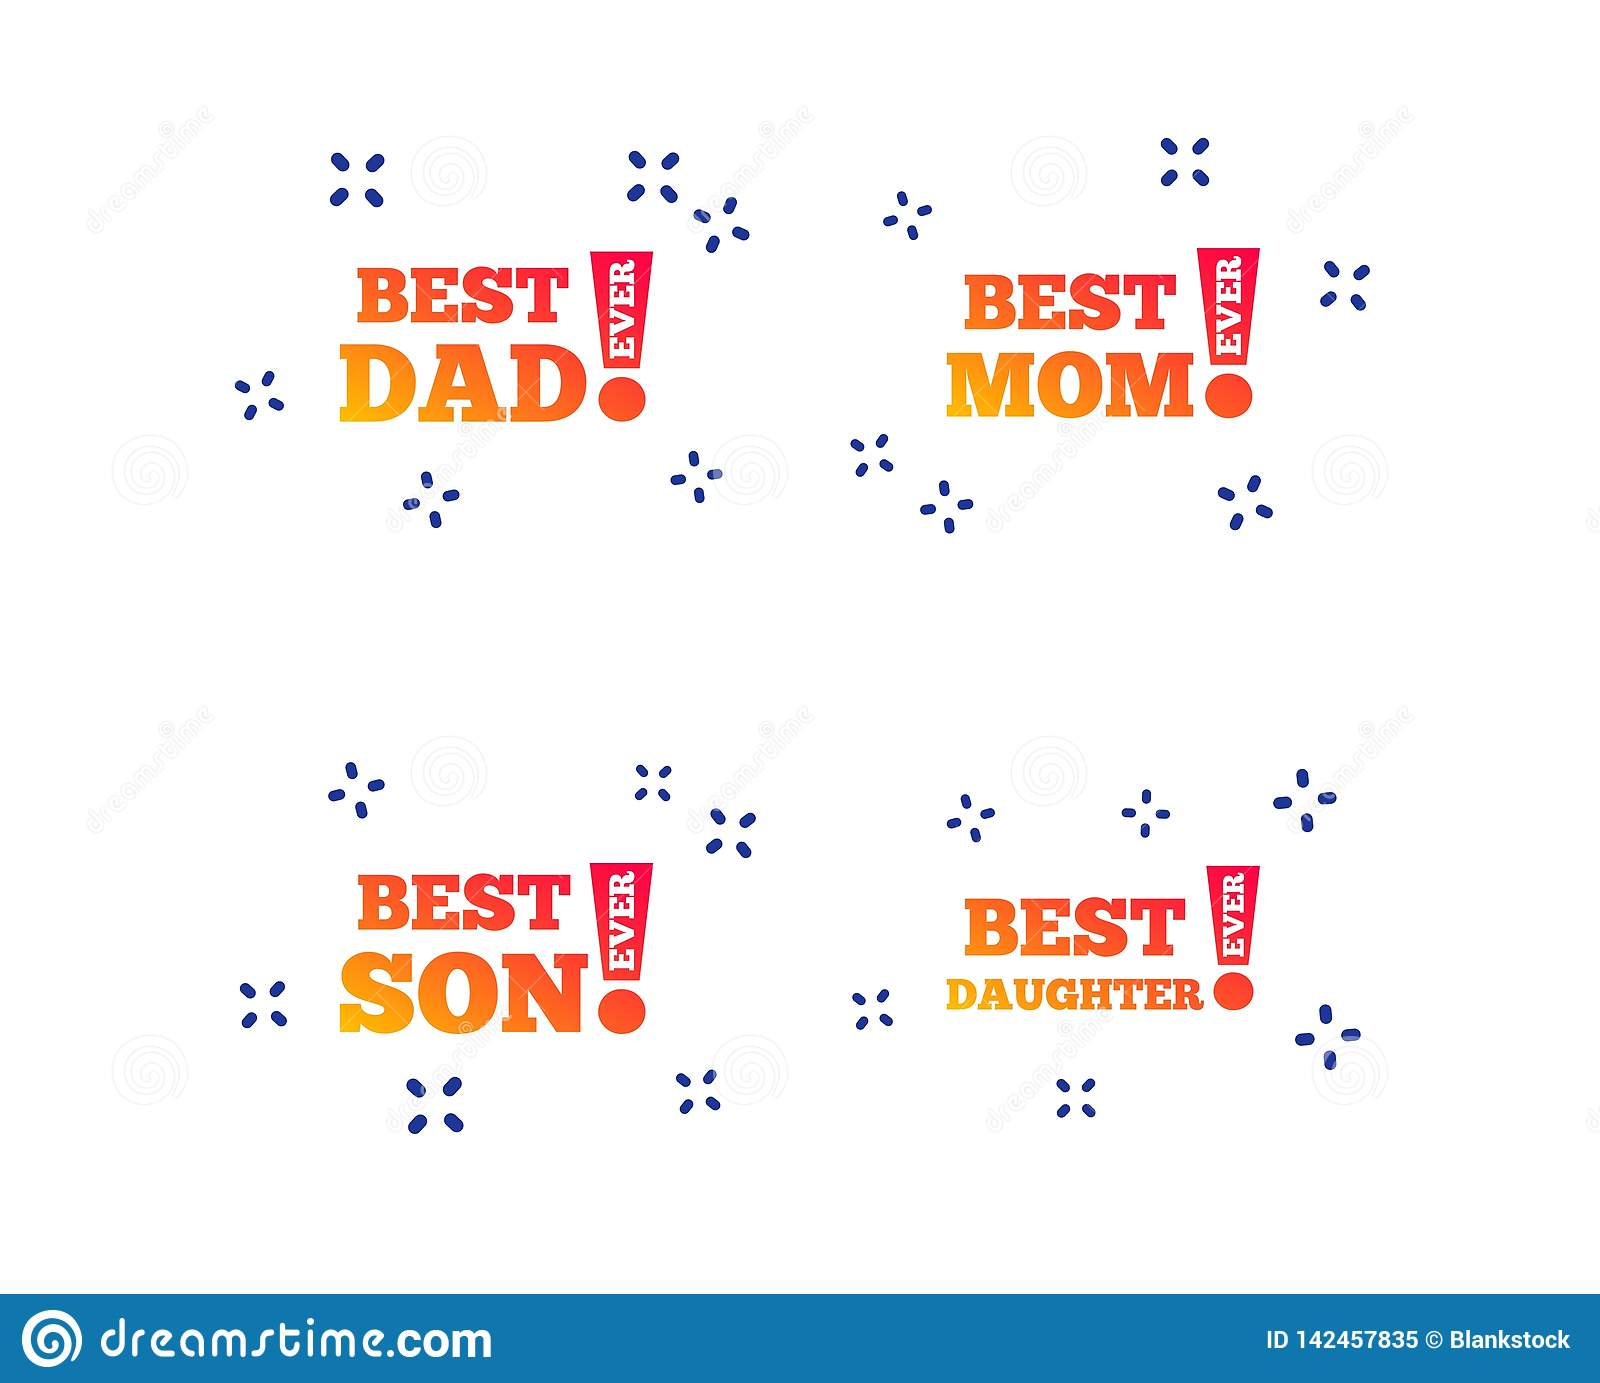 Best mom and dad, son, daughter icons. Vector